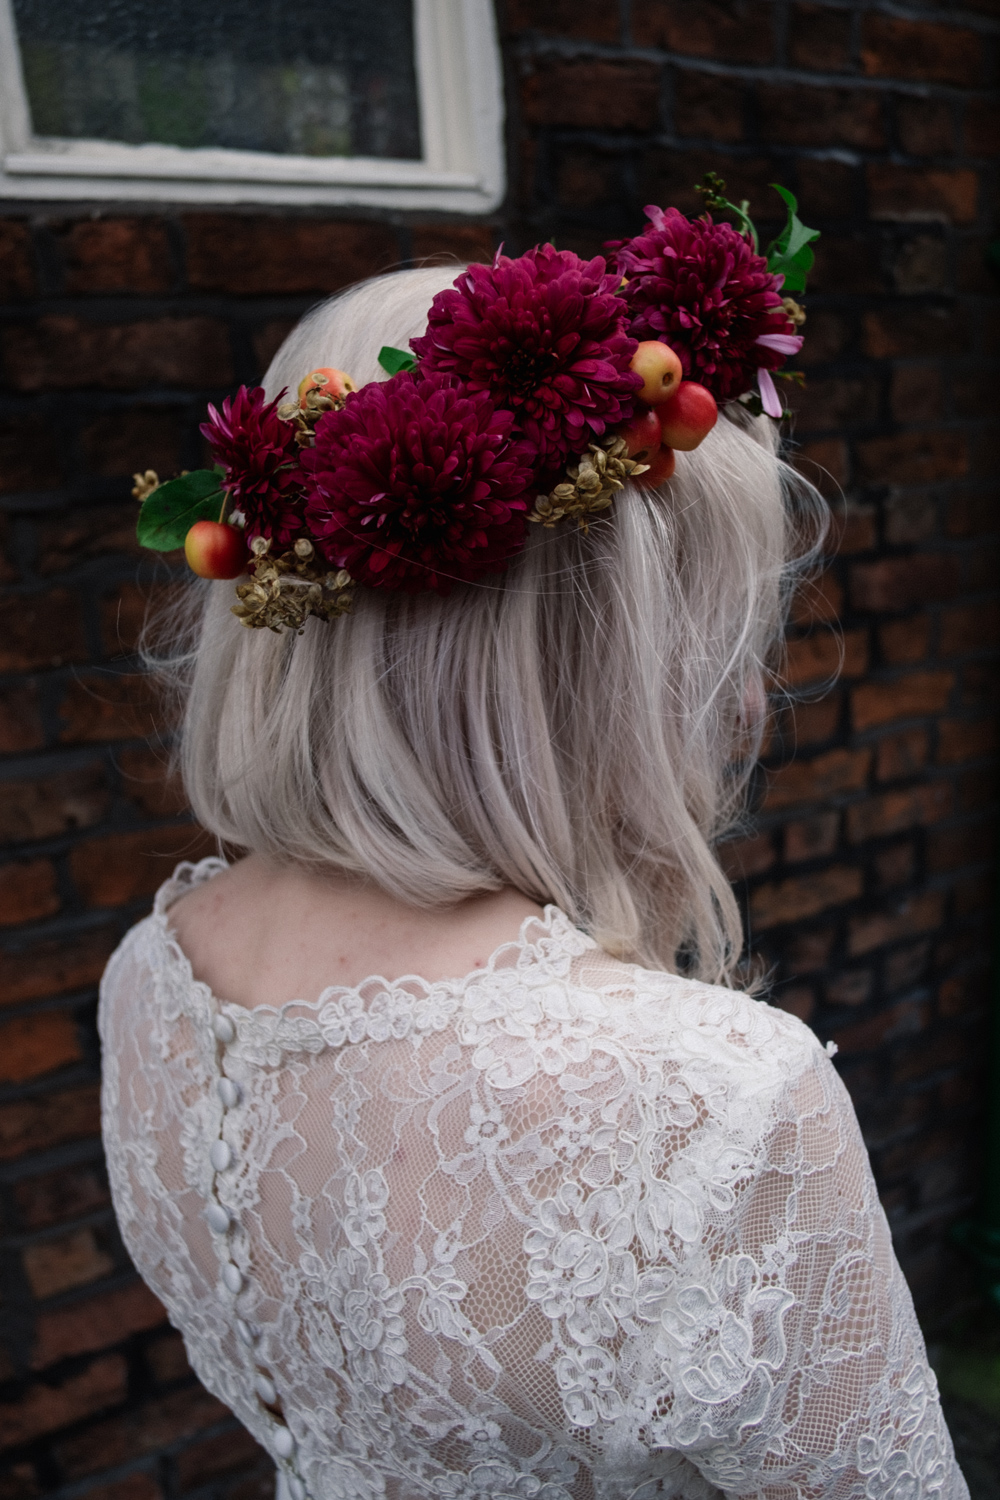 Martha showing the lace from the back of her dress and showing her flower crown